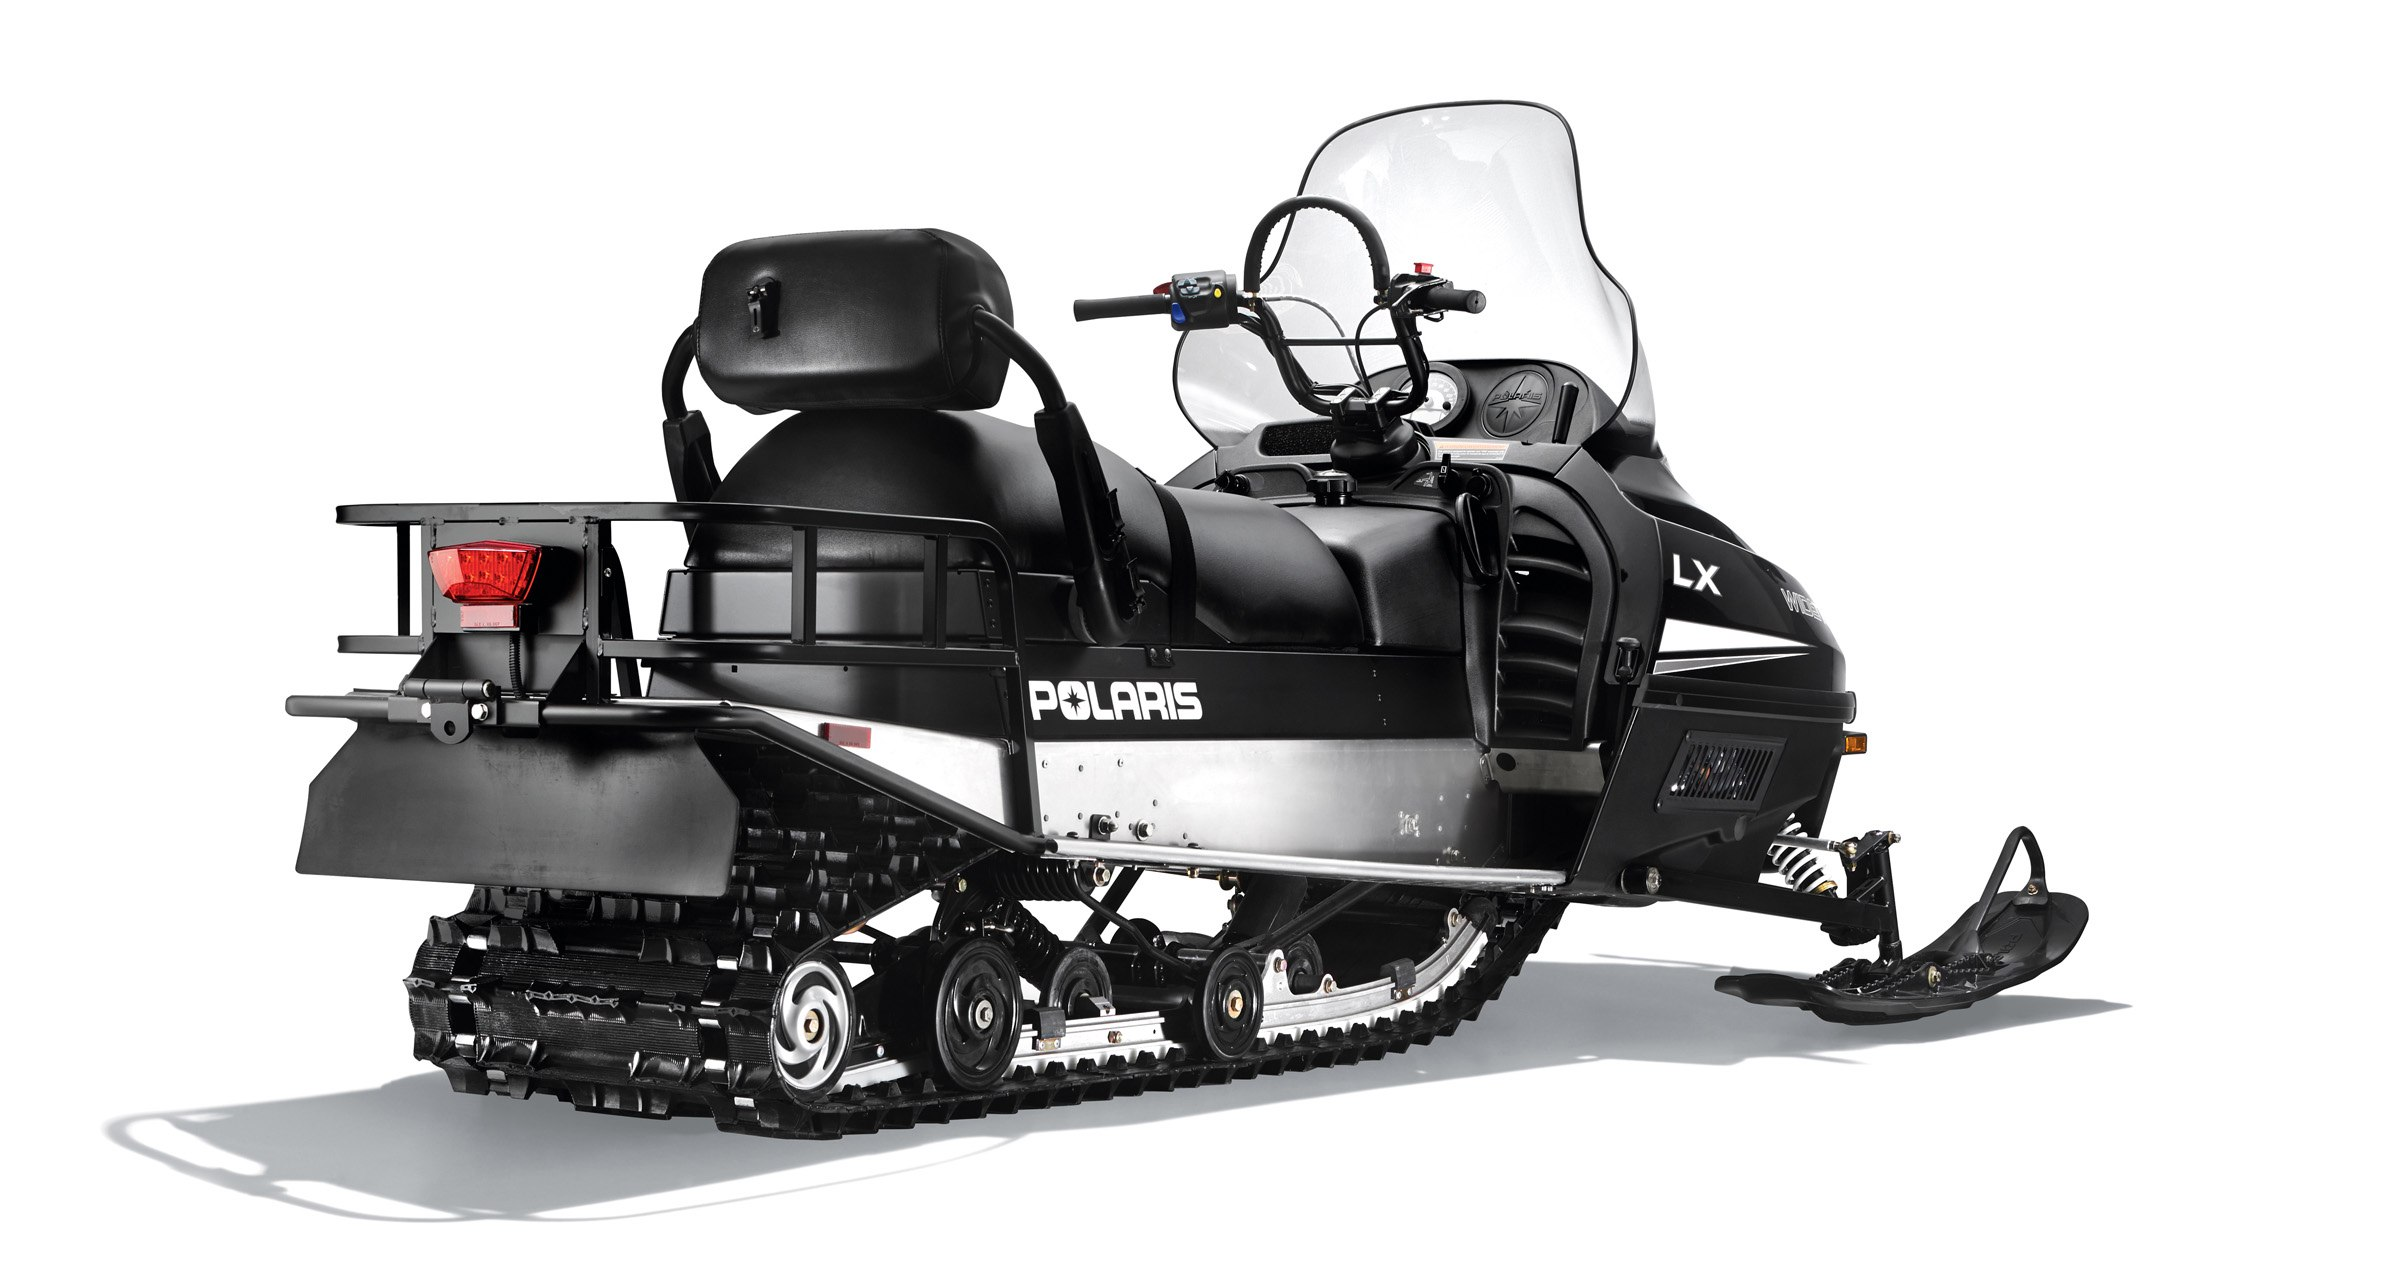 2016 Polaris 550 Widetrak LX ES in El Campo, Texas